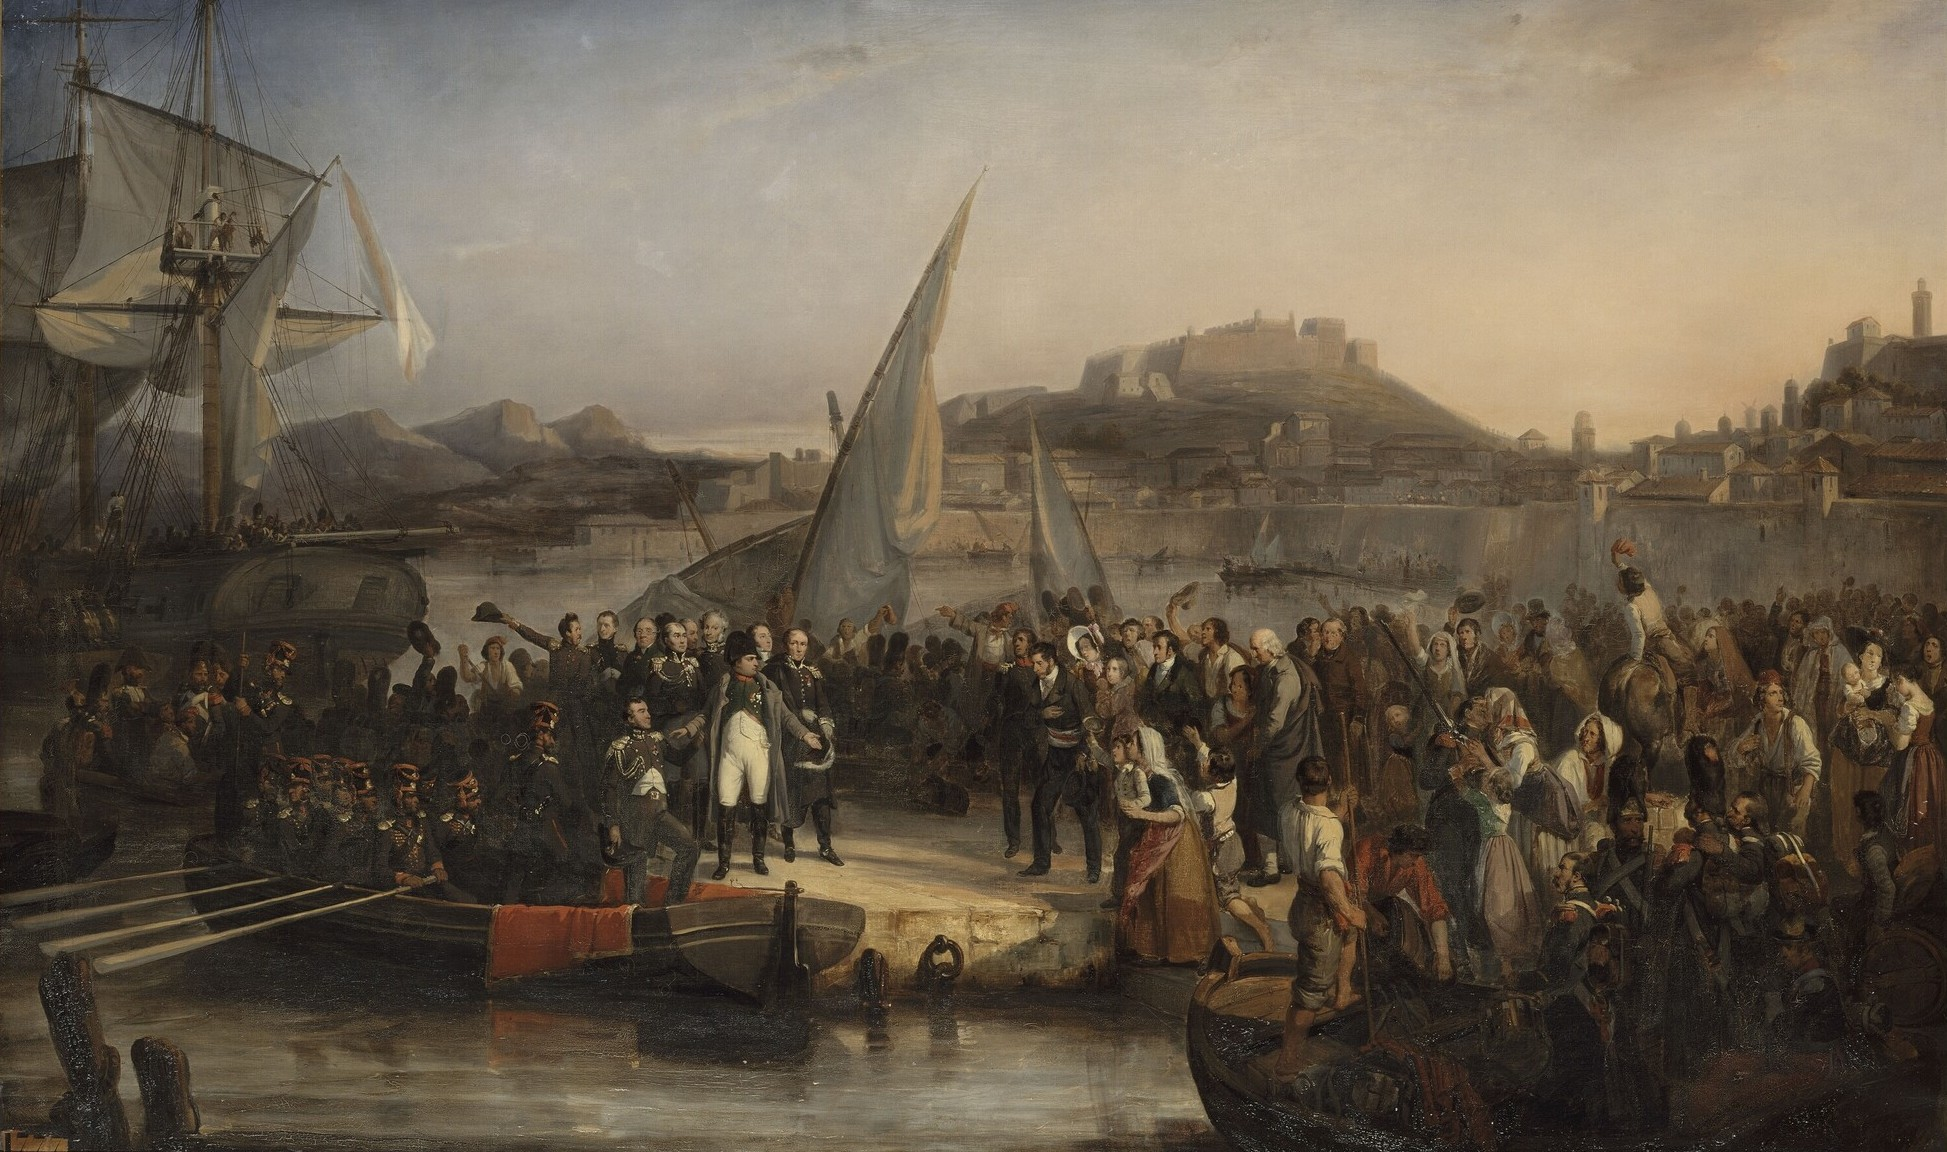 Napoleon leaving Elba, painted by Joseph Beaume.